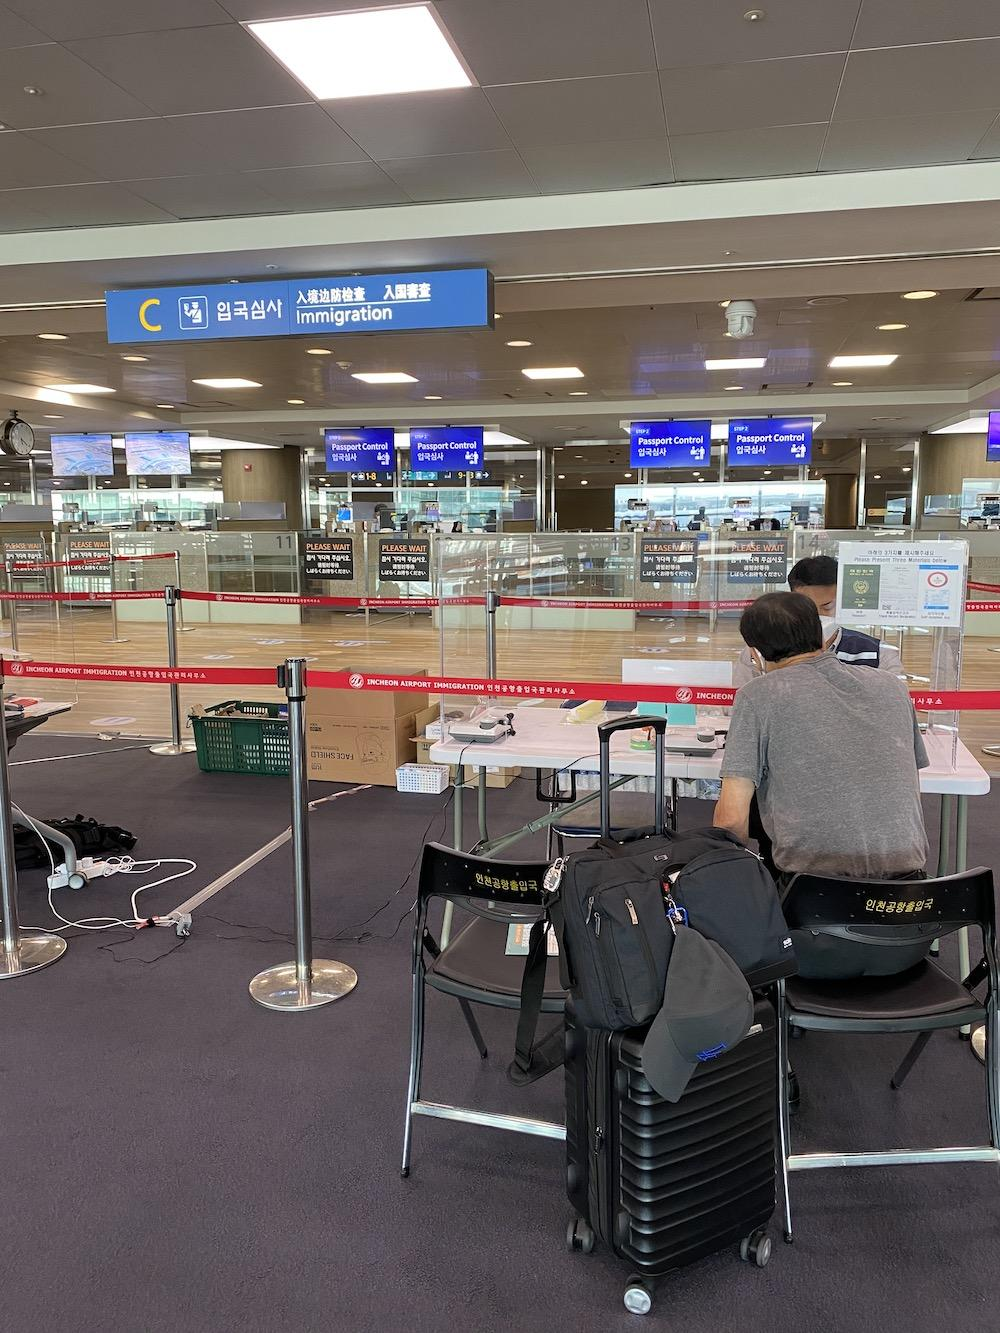 A quarantine-facilitating official checks a man's forms in the Incheon International Airport in South Korea. The man sat with his luggage at the second station at 5:20 p.m.